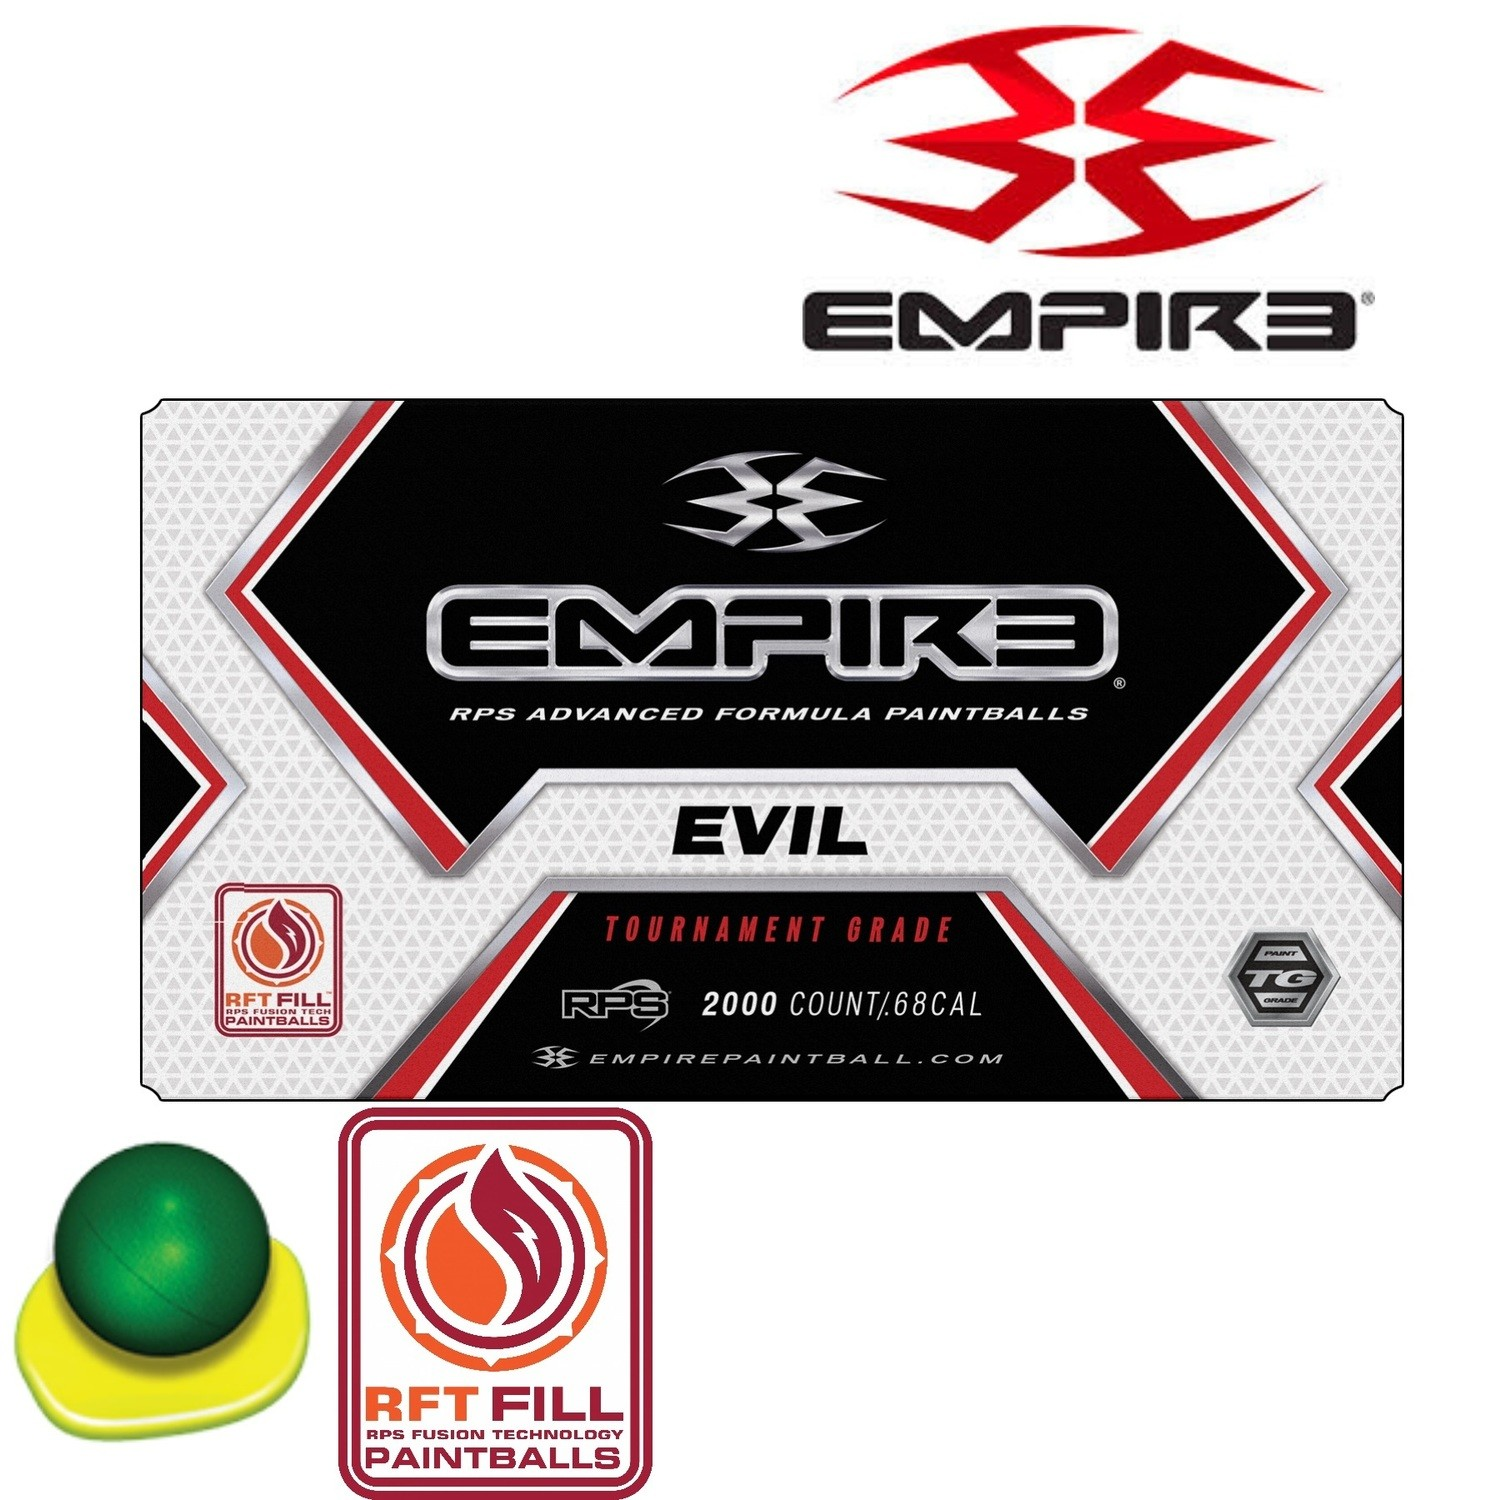 Empire Ultra Evil .68 cal Paintballs - Case of 2000 Rds - Metallic Pine Shell - Yellow Fill